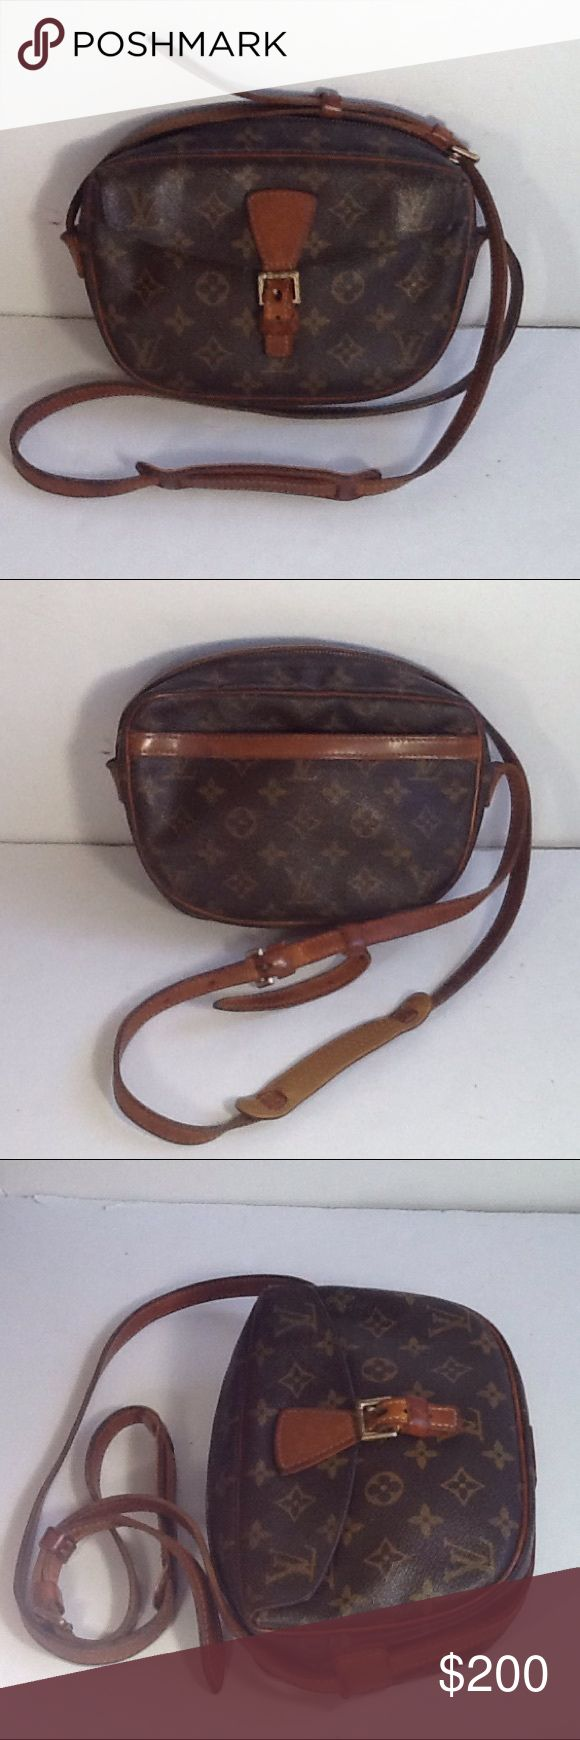 Authentic Louis Vuitton Jeune Fille Monogram Bag. Some light sticky are inside the pockets. The inside zipper pull tab was replaced. The bag was made in the USA with a date code SD 0162. Some light ink stains are inside the bag. The handle and leather showed signs of used. The dimension is 9, 6 and 2.5 Louis Vuitton Bags Crossbody Bags